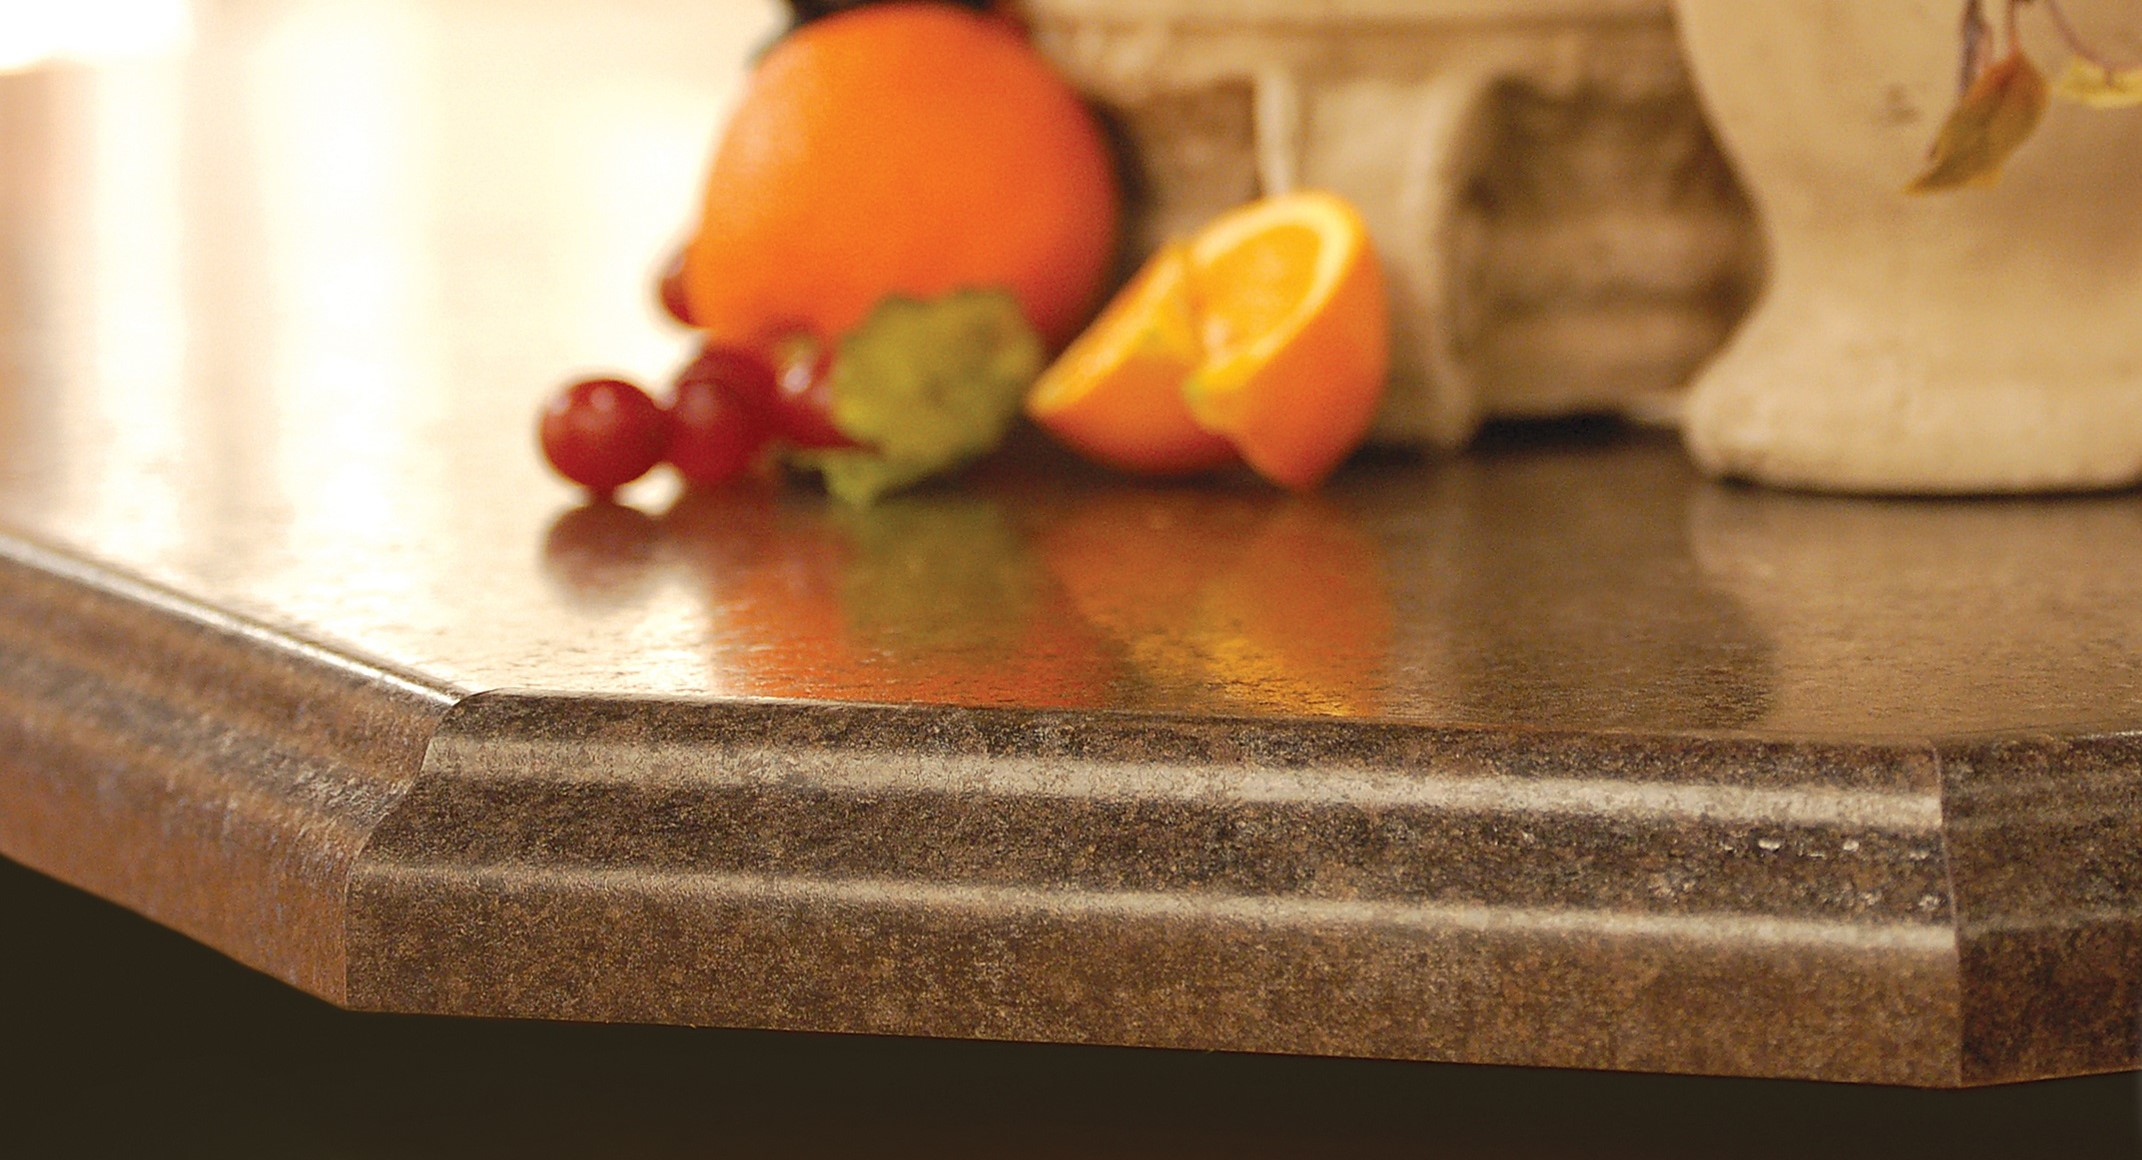 Countertop corner with fruit